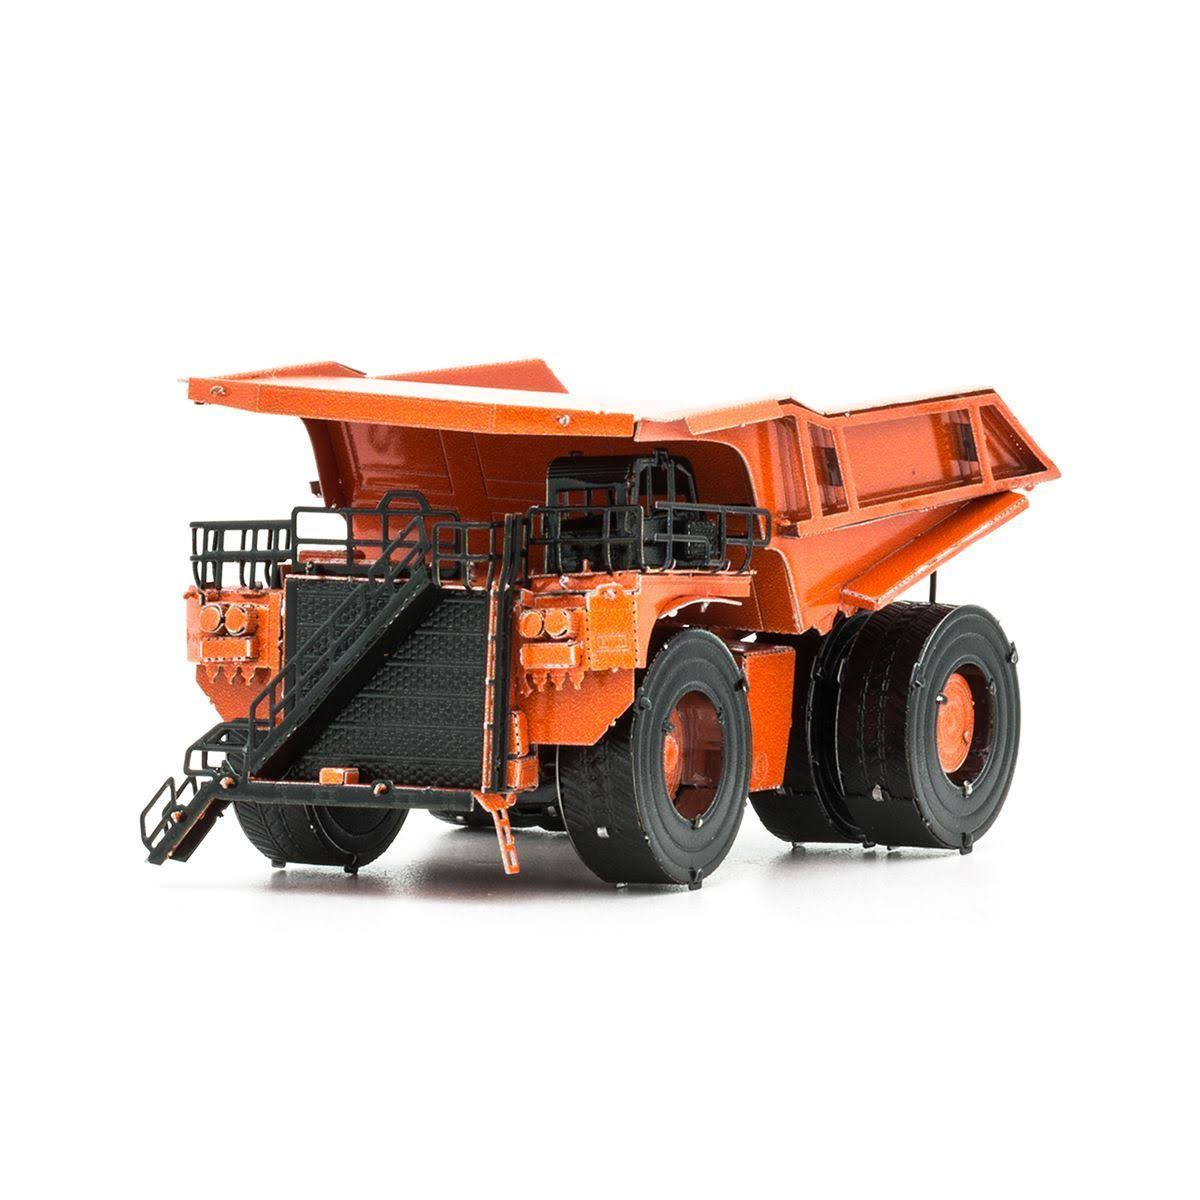 Fascinations Metal Earth Mining Truck 3D Metal Model Kit